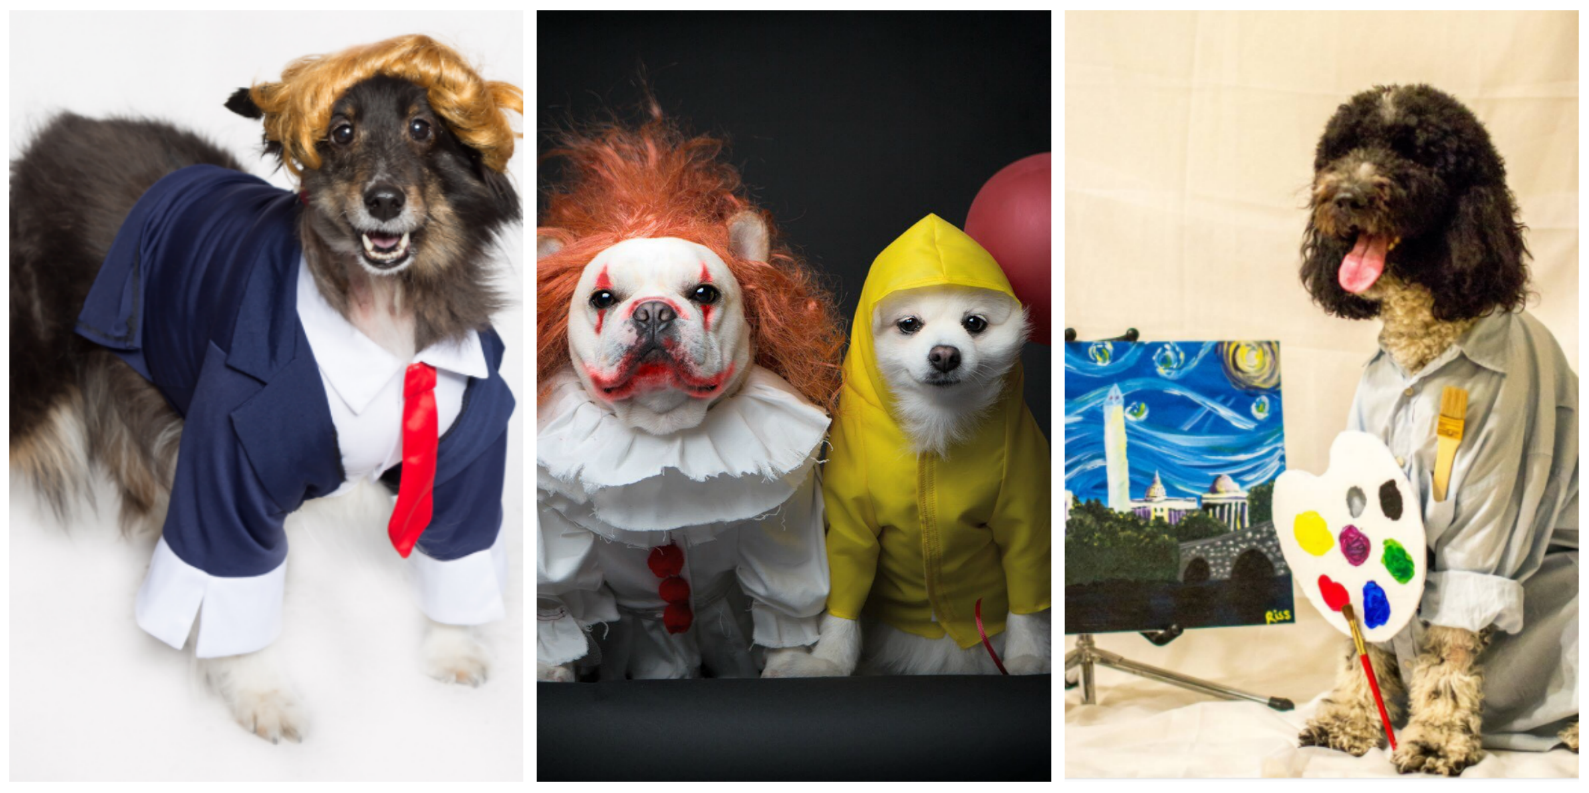 Weekday Halloweens are ruff... we're all nursing a sugar hangover today! But just in case you need a little extra oomph to get through #humpday, here are 35 pets who totally ROCKED Halloween this year! (Images: IG users @dcdogmoms, @sebastianlovesluna and @teddy4president)<p></p>